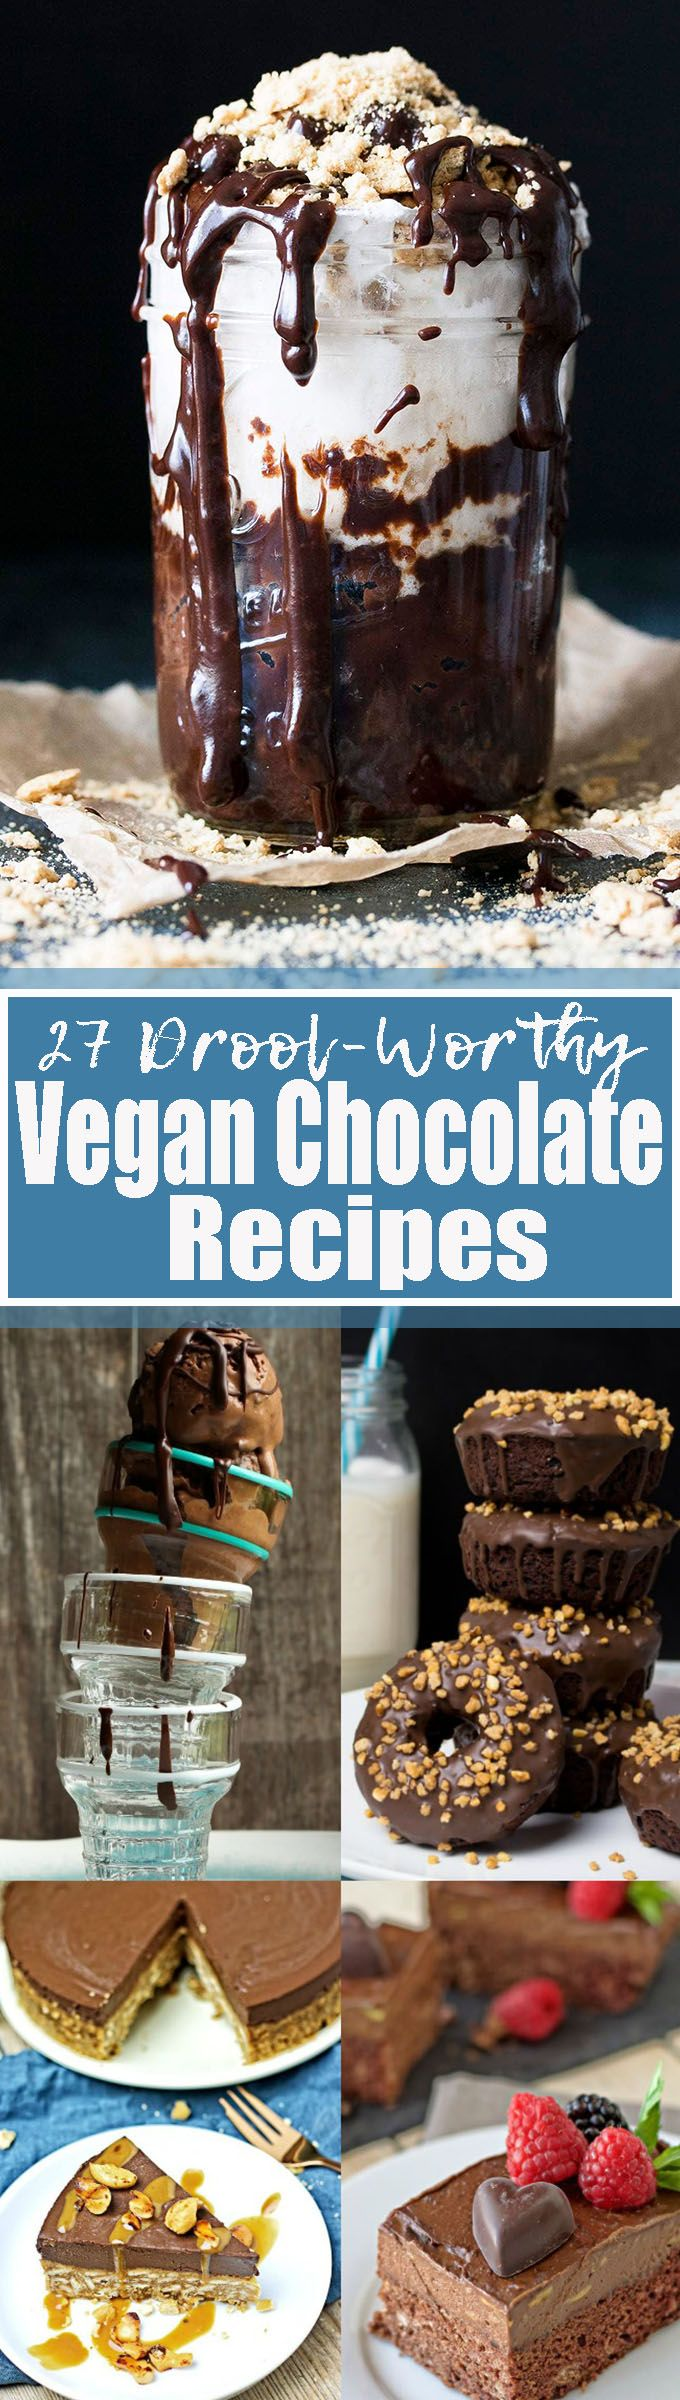 If you like chocolate, you will love these 27 vegan chocolate recipes! They all make the perfect vegan dessert! The roundup includes vegan ice cream, vegan cake, vegan donuts, vegan cookies, and so much more!